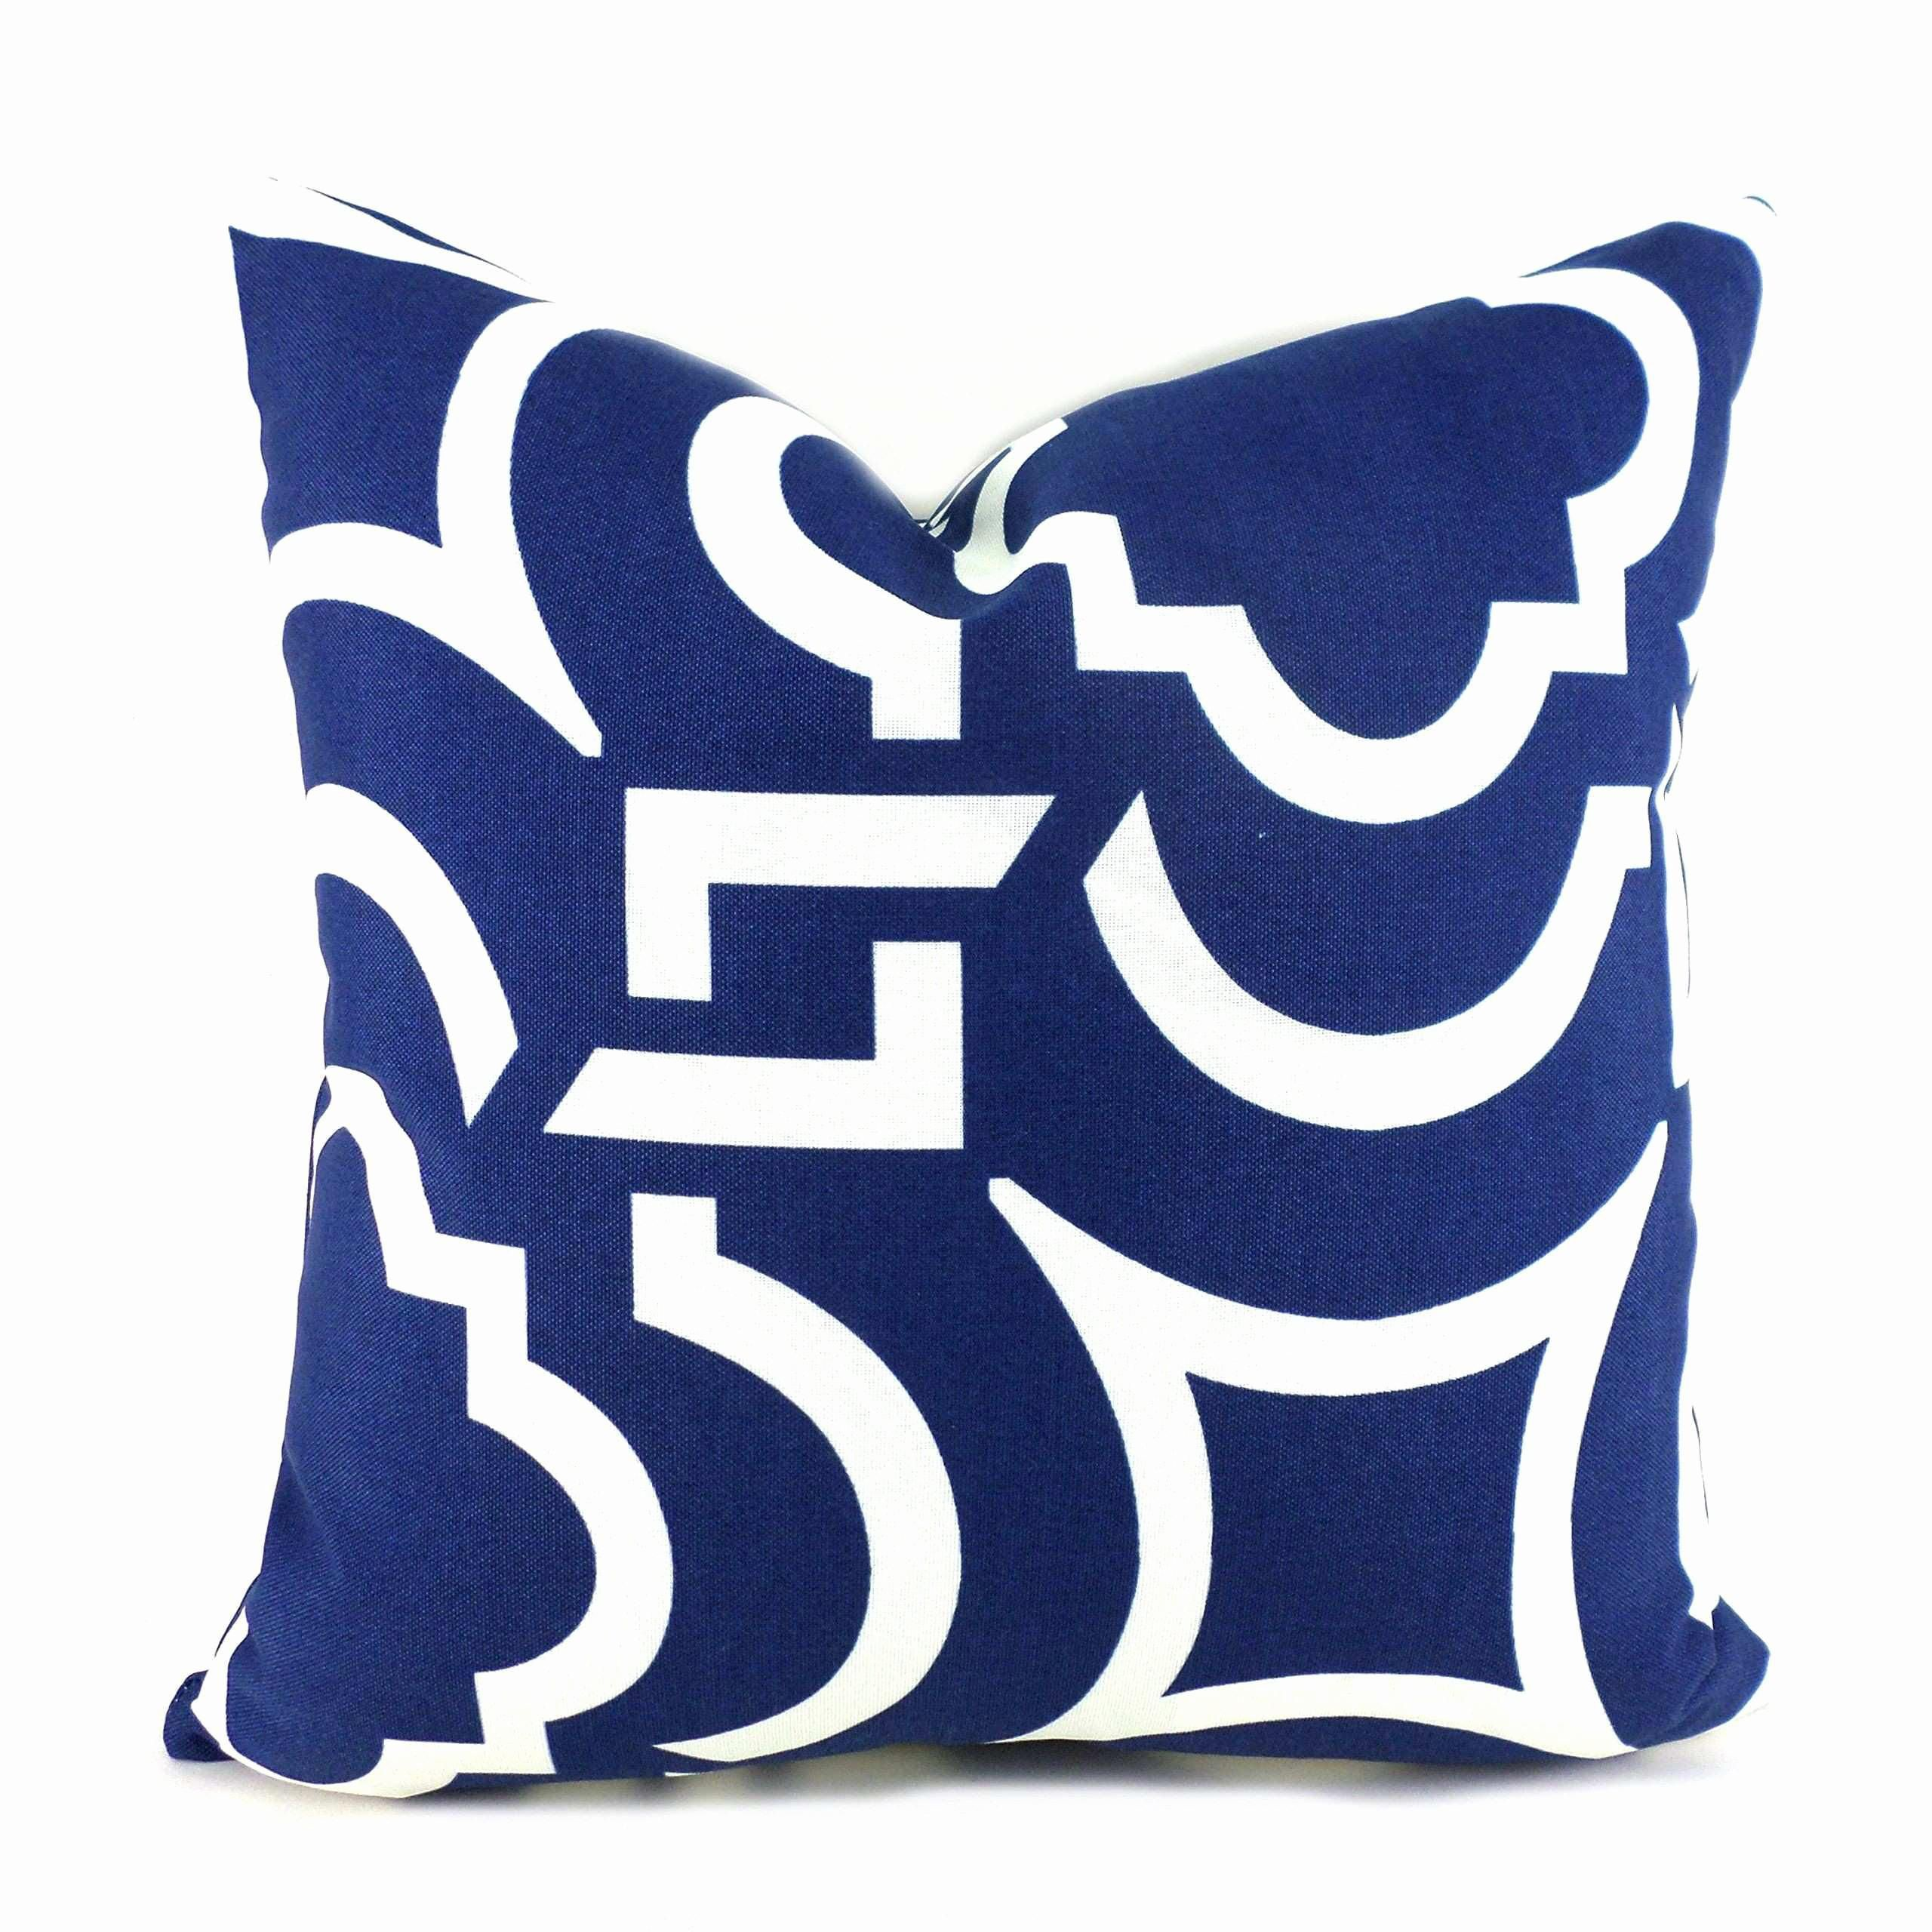 Pin by vps on pillow decorative pillows pillows pillow covers